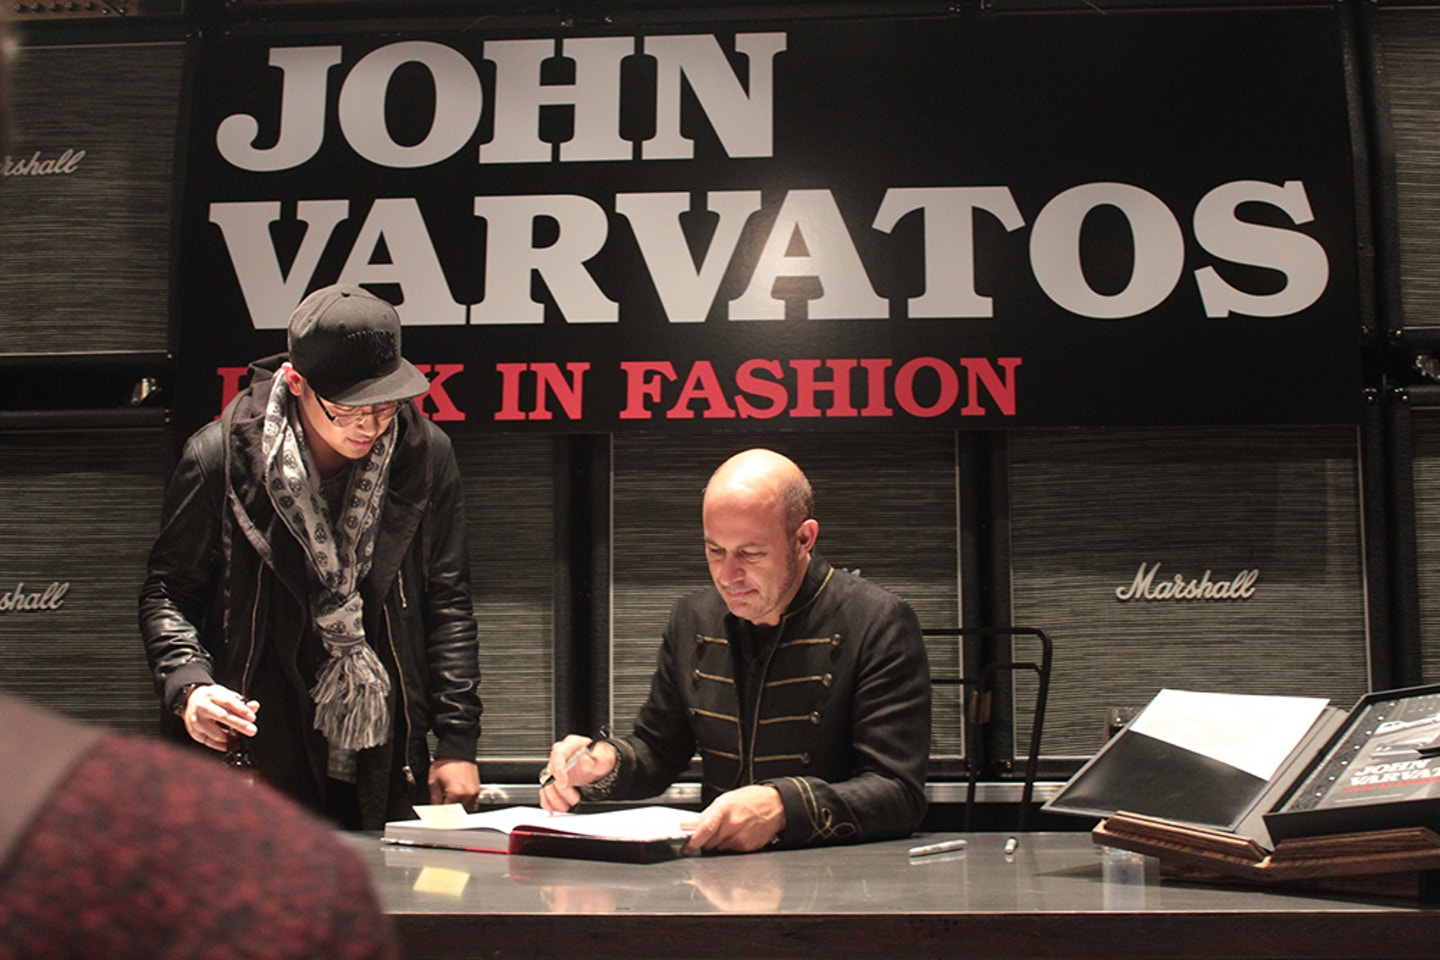 John Varvatos Rock In Fashion book signing and Yorkdale store opening